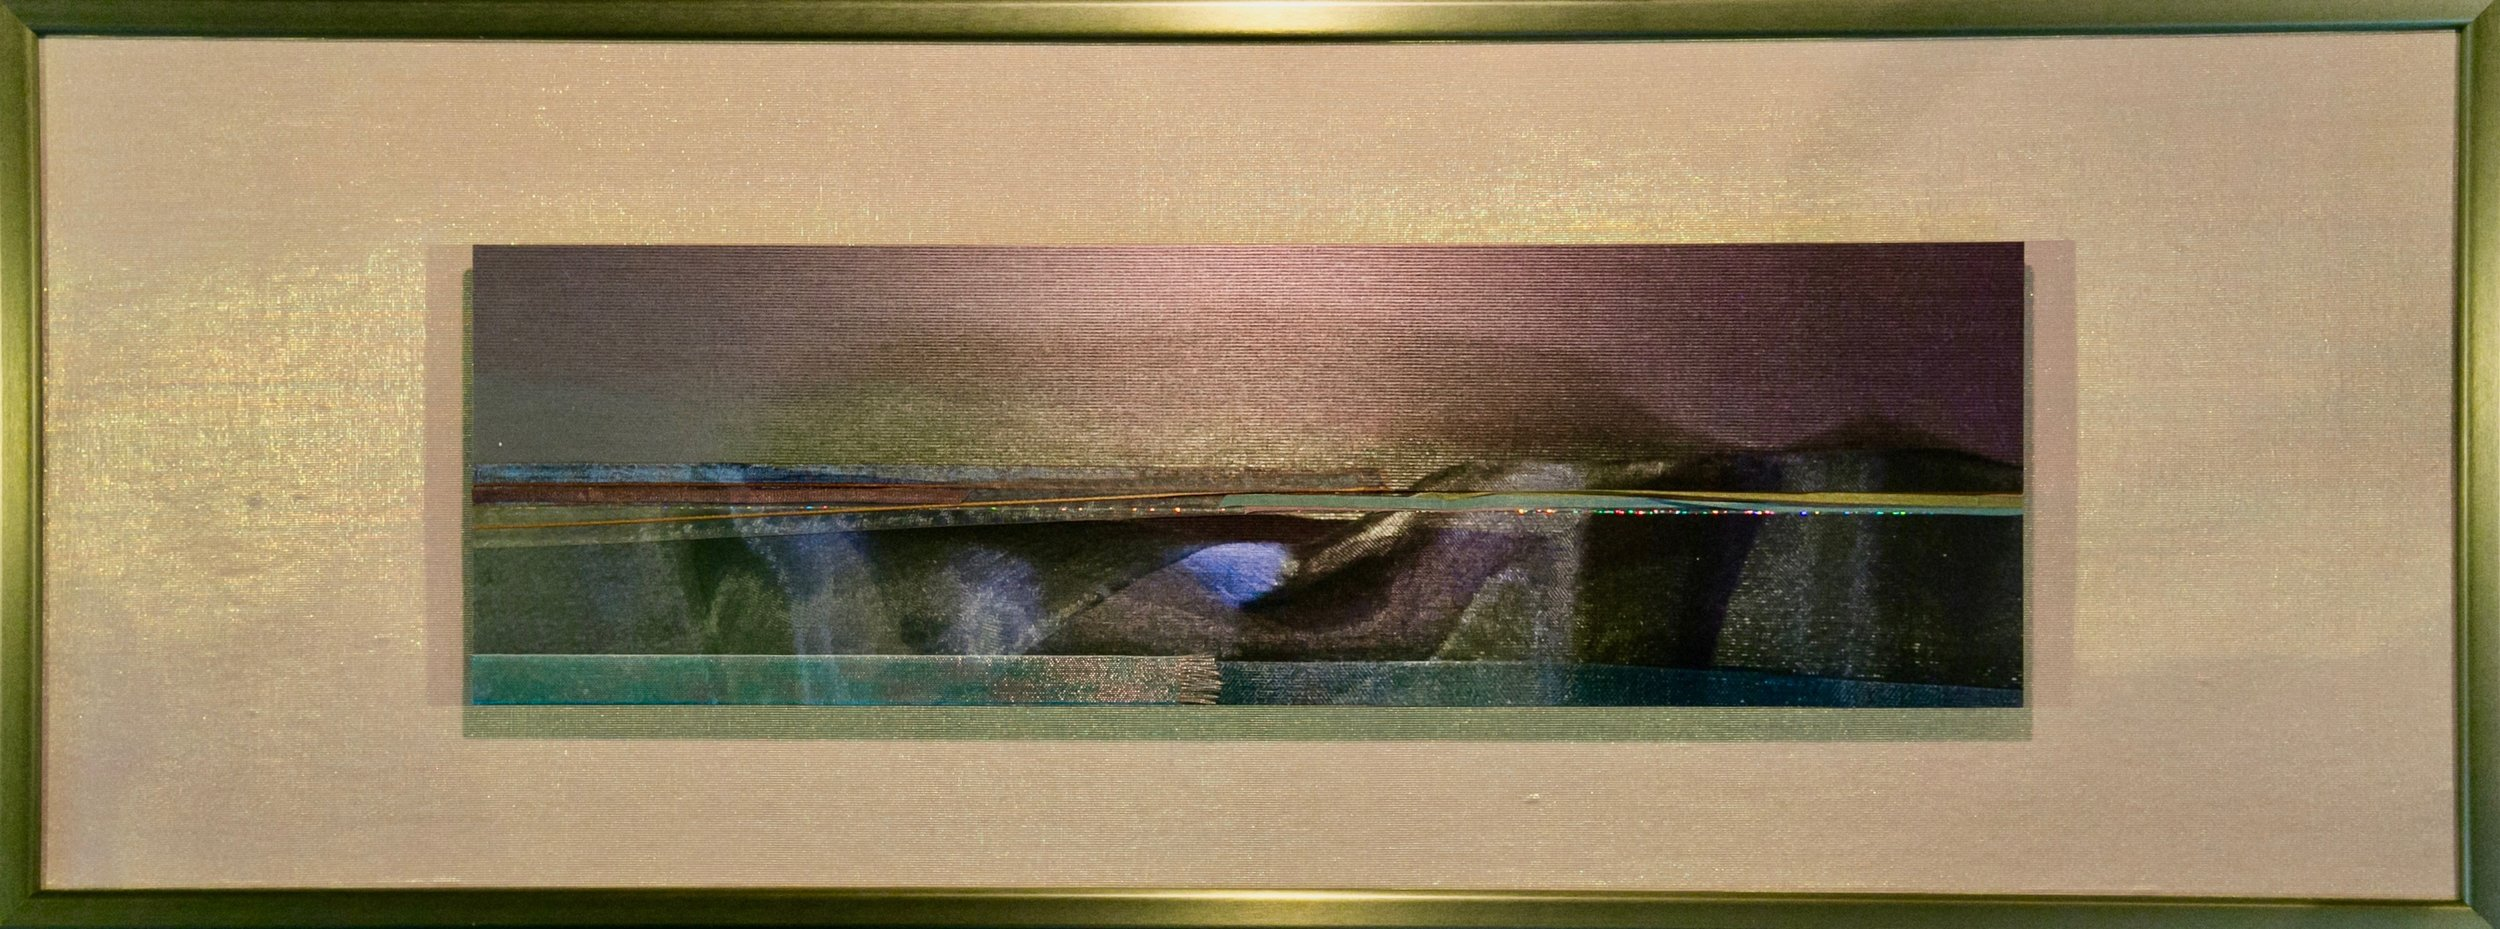 "Skyscapes Series    Opalescent Bliss   12"" x 32""  Brushed Metal Print with Silks  2018"